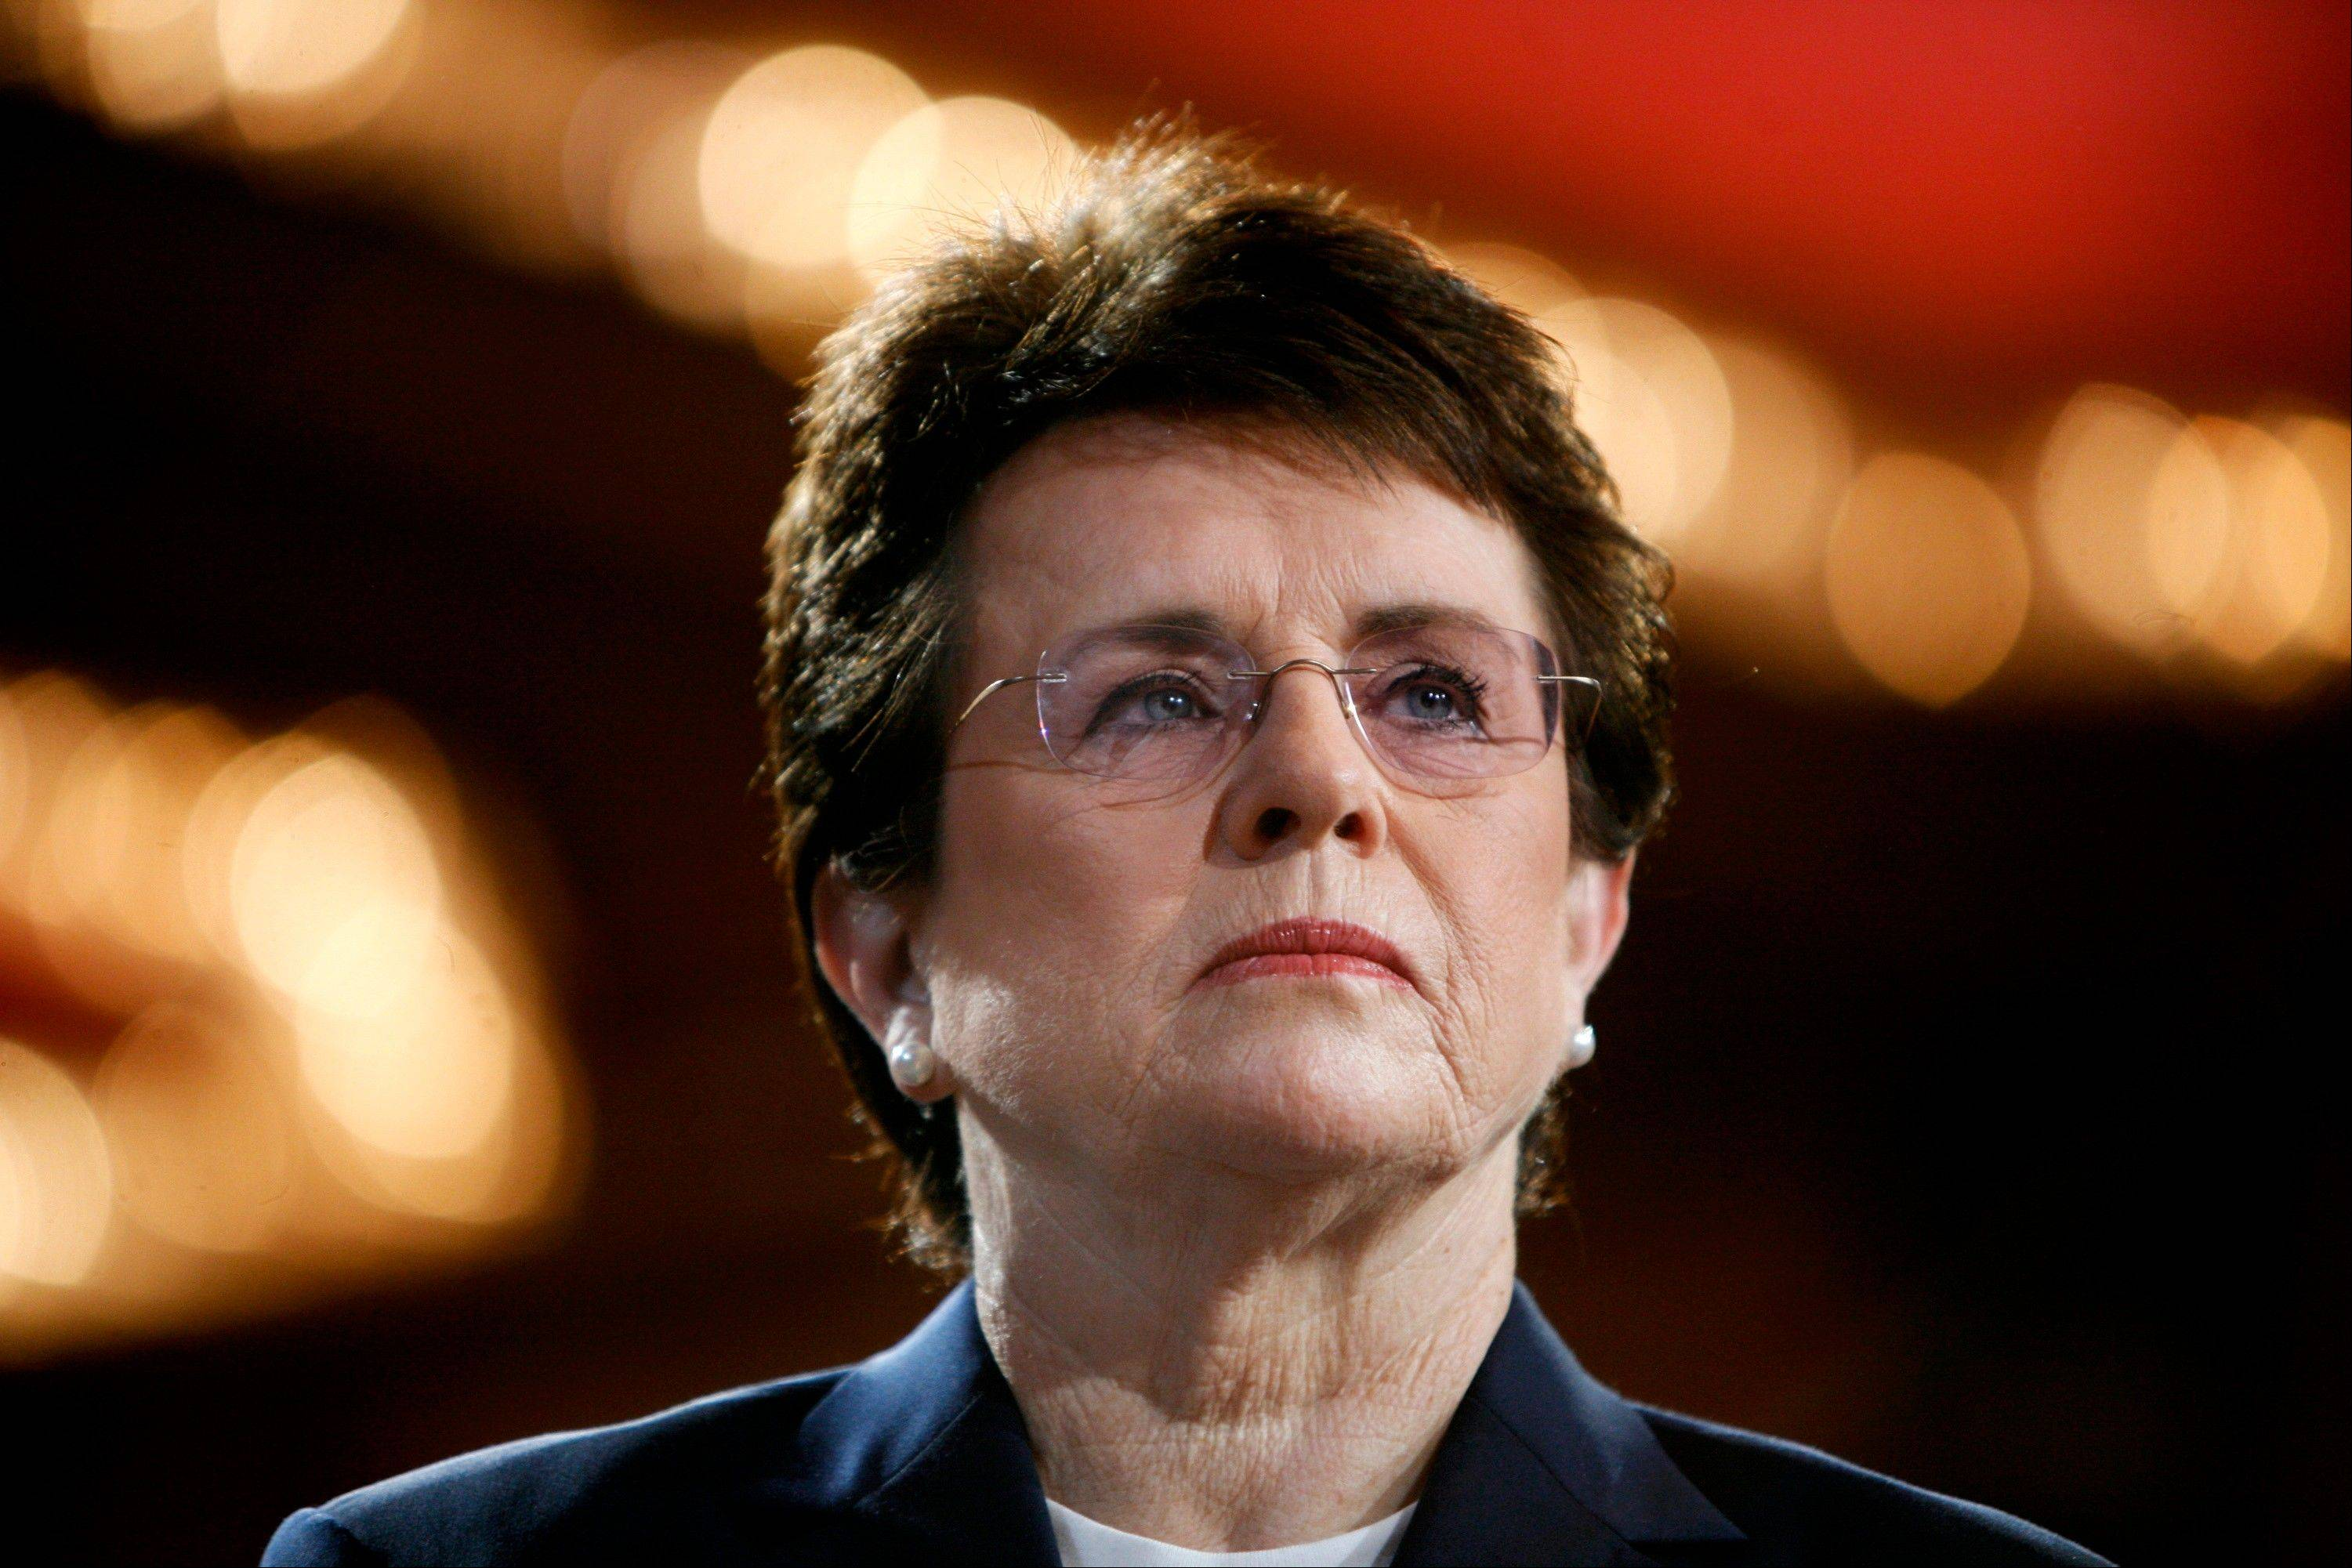 FILE - In this June 4, 2007, file photo, tennis champion Billie Jean King is introduced during a town hall conversation hosted by the group Women for Hillary in New York. King will not attend Friday's opening ceremony of the Sochi Olympics in Russia because her mother is ill. King, chosen in December to help lead the U.S. delegation to the Sochi Games, has been outspoken in her opposition to Russia's anti-gay law and had planned to attend ice hockey and figure skating events and meet U.S. athletes during her three-day visit to the games. (AP Photo/Jason DeCrow, File)